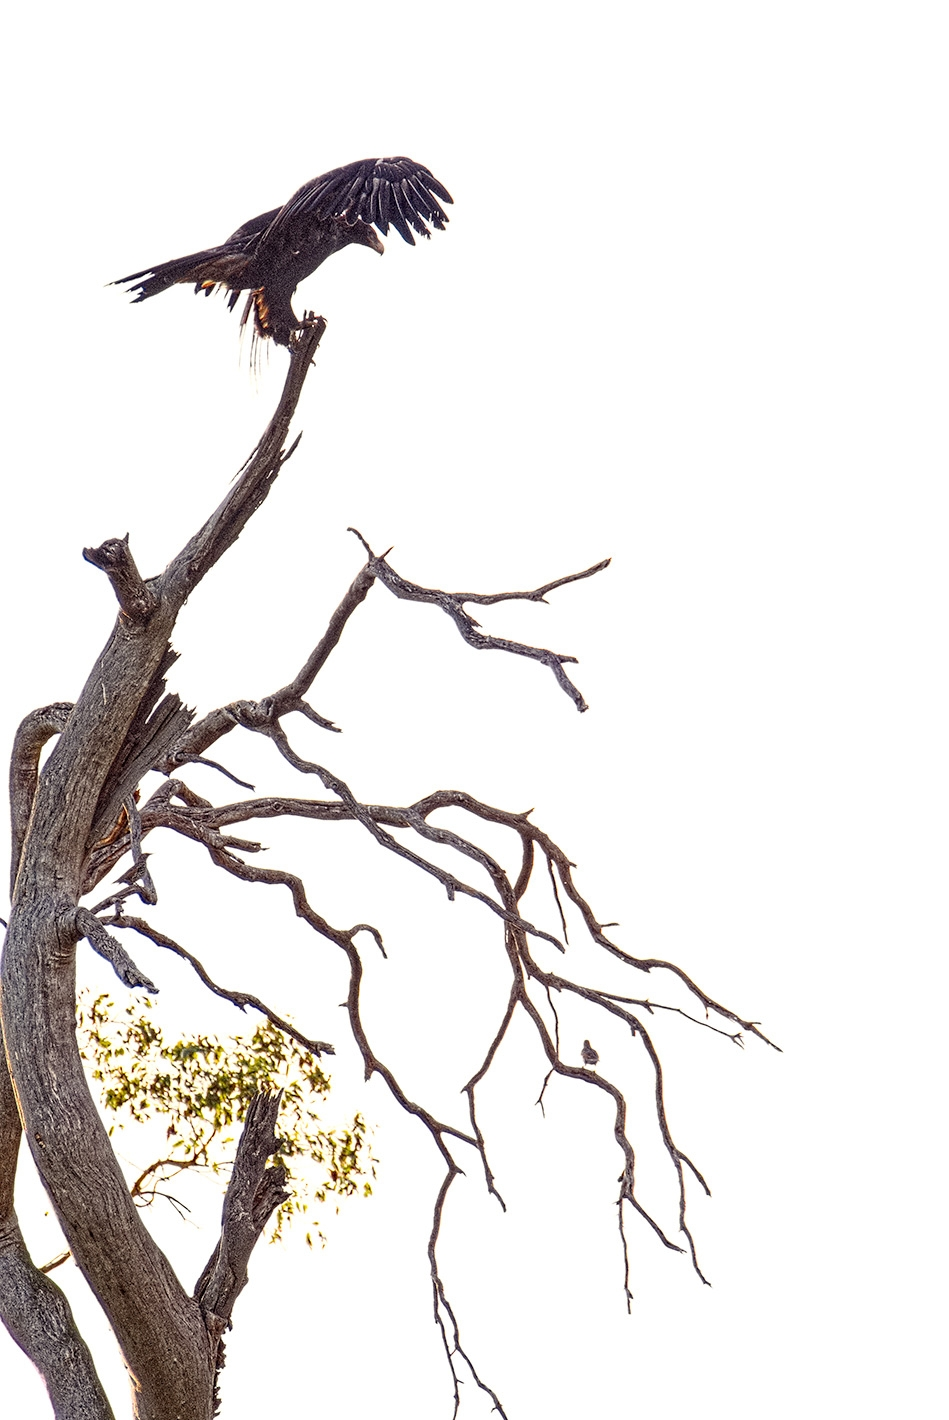 Tasmanian Wedge-Tailed Eagles